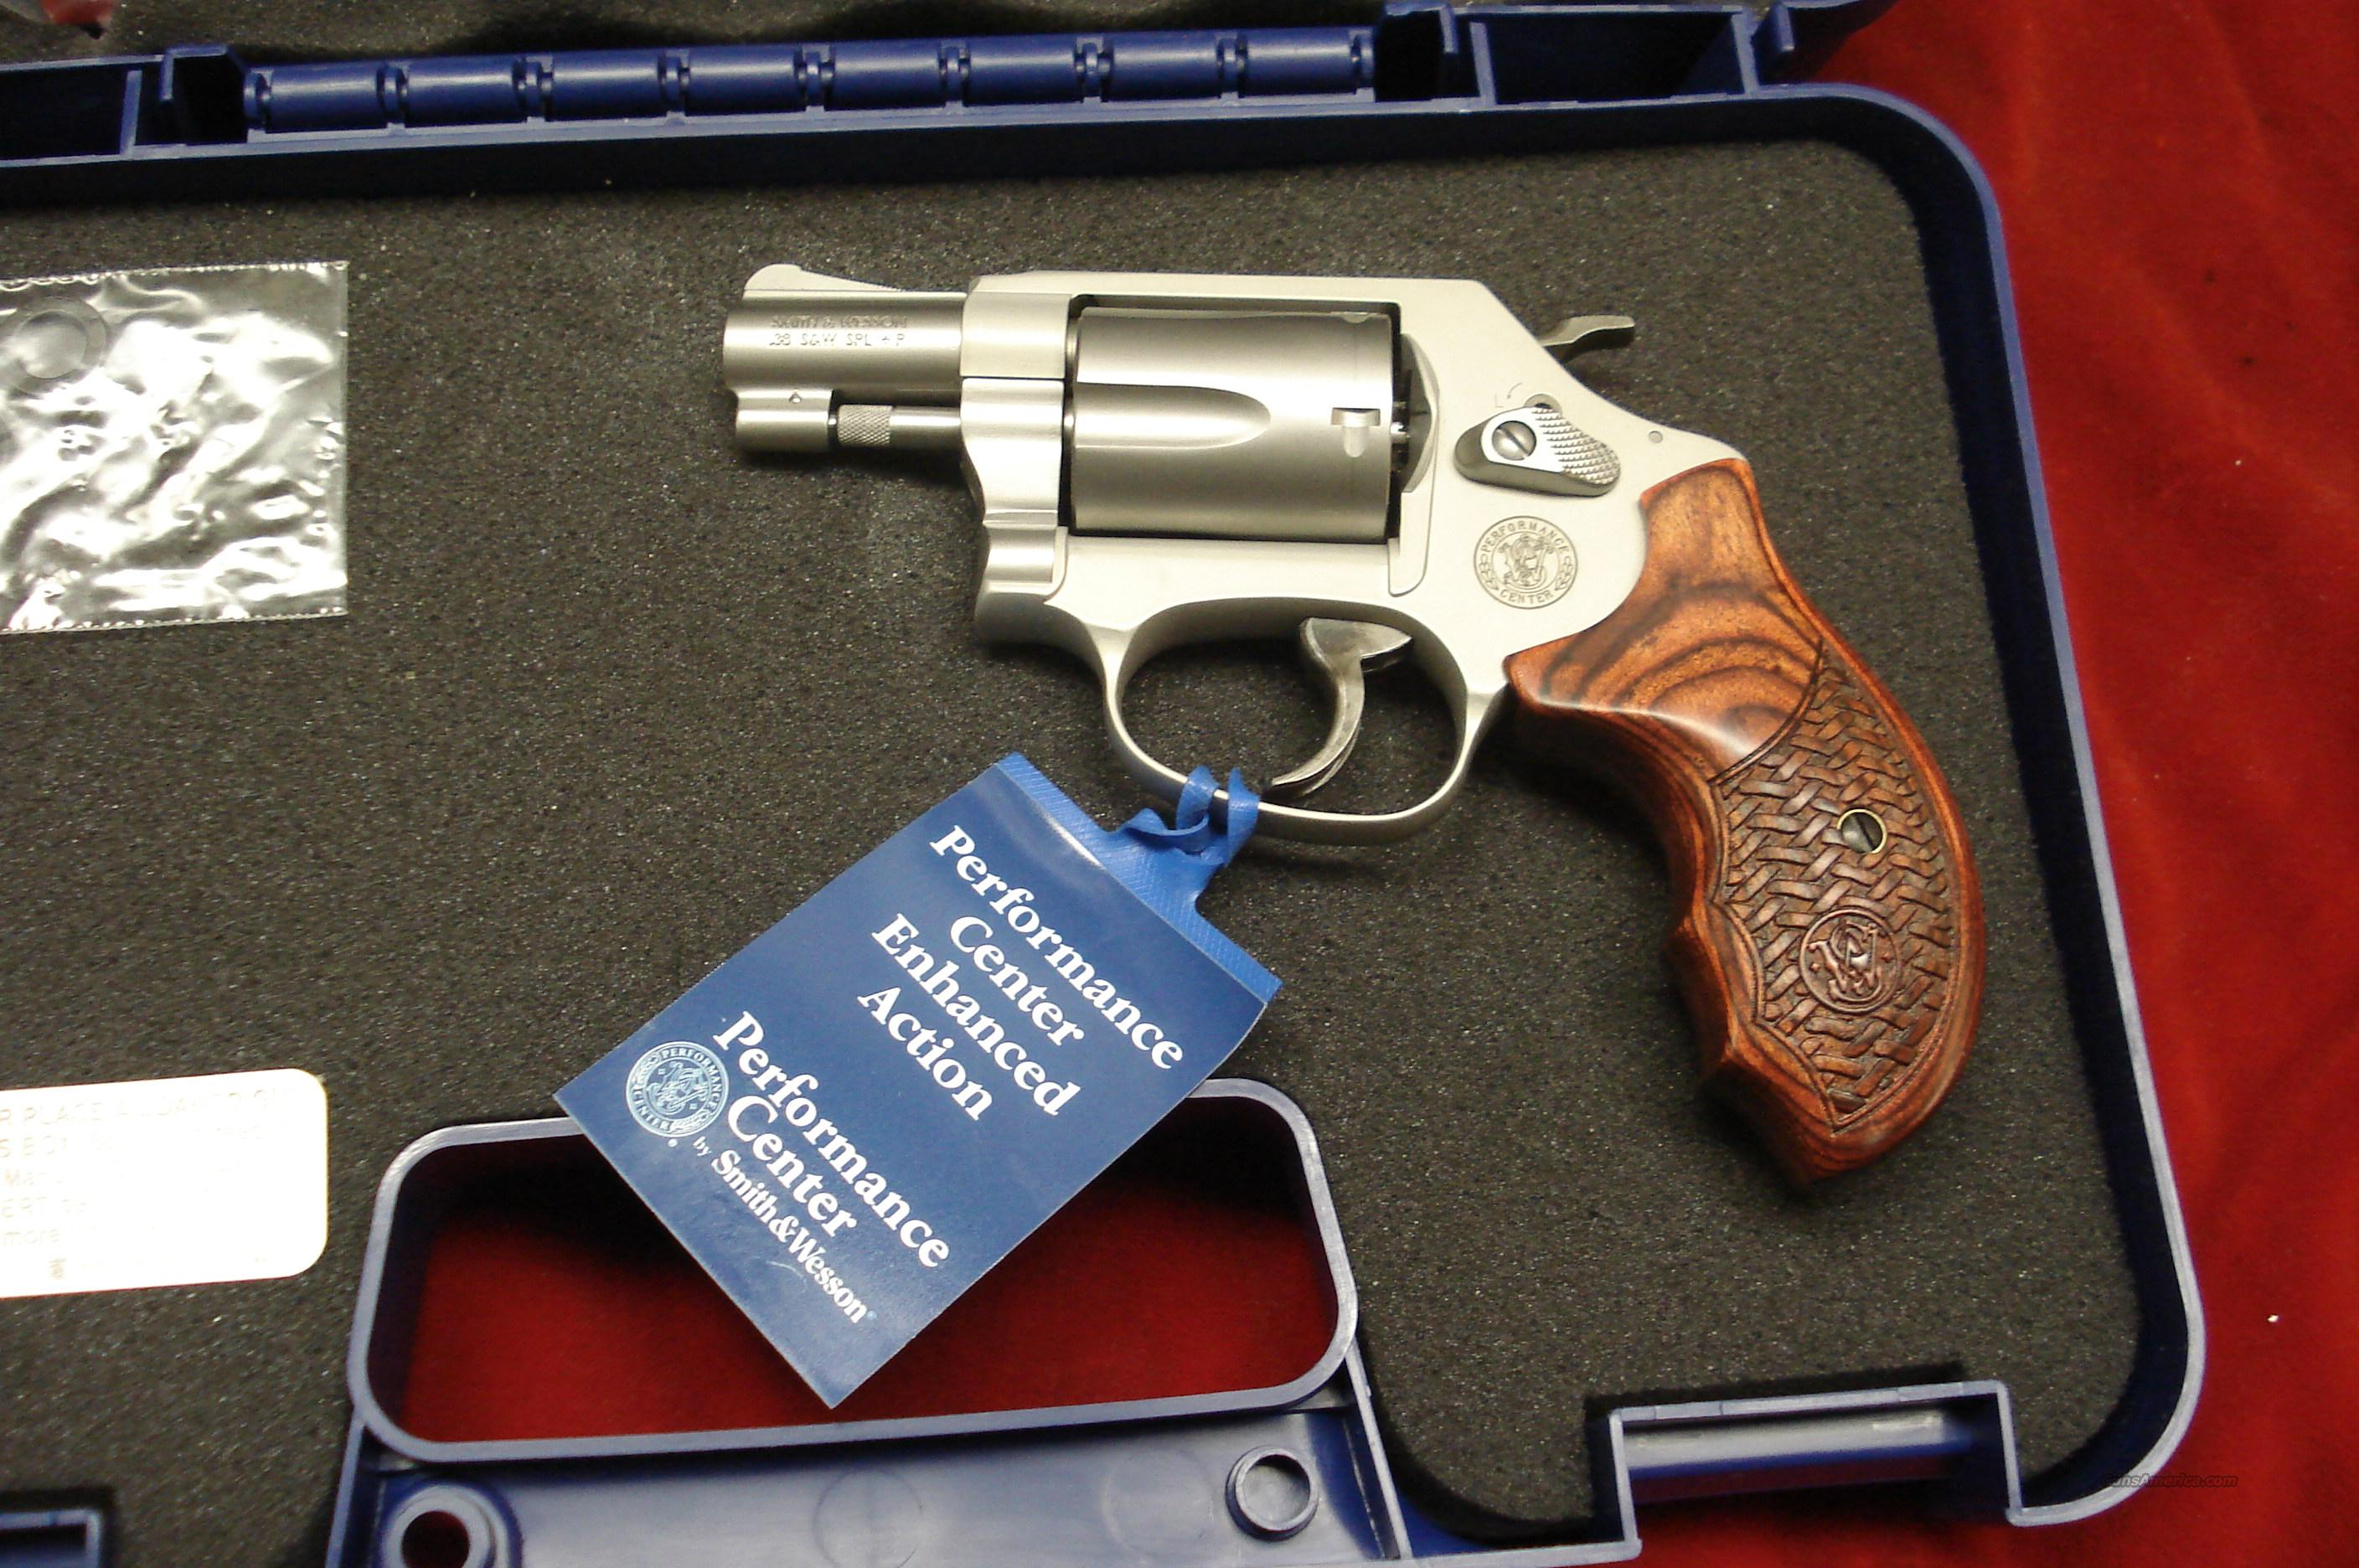 SMITH AND WESSON PERFORMANCE CENTER MODEL 637 AIRWEIGHT 38SPL NEW   Guns > Pistols > Smith & Wesson Revolvers > Performance Center